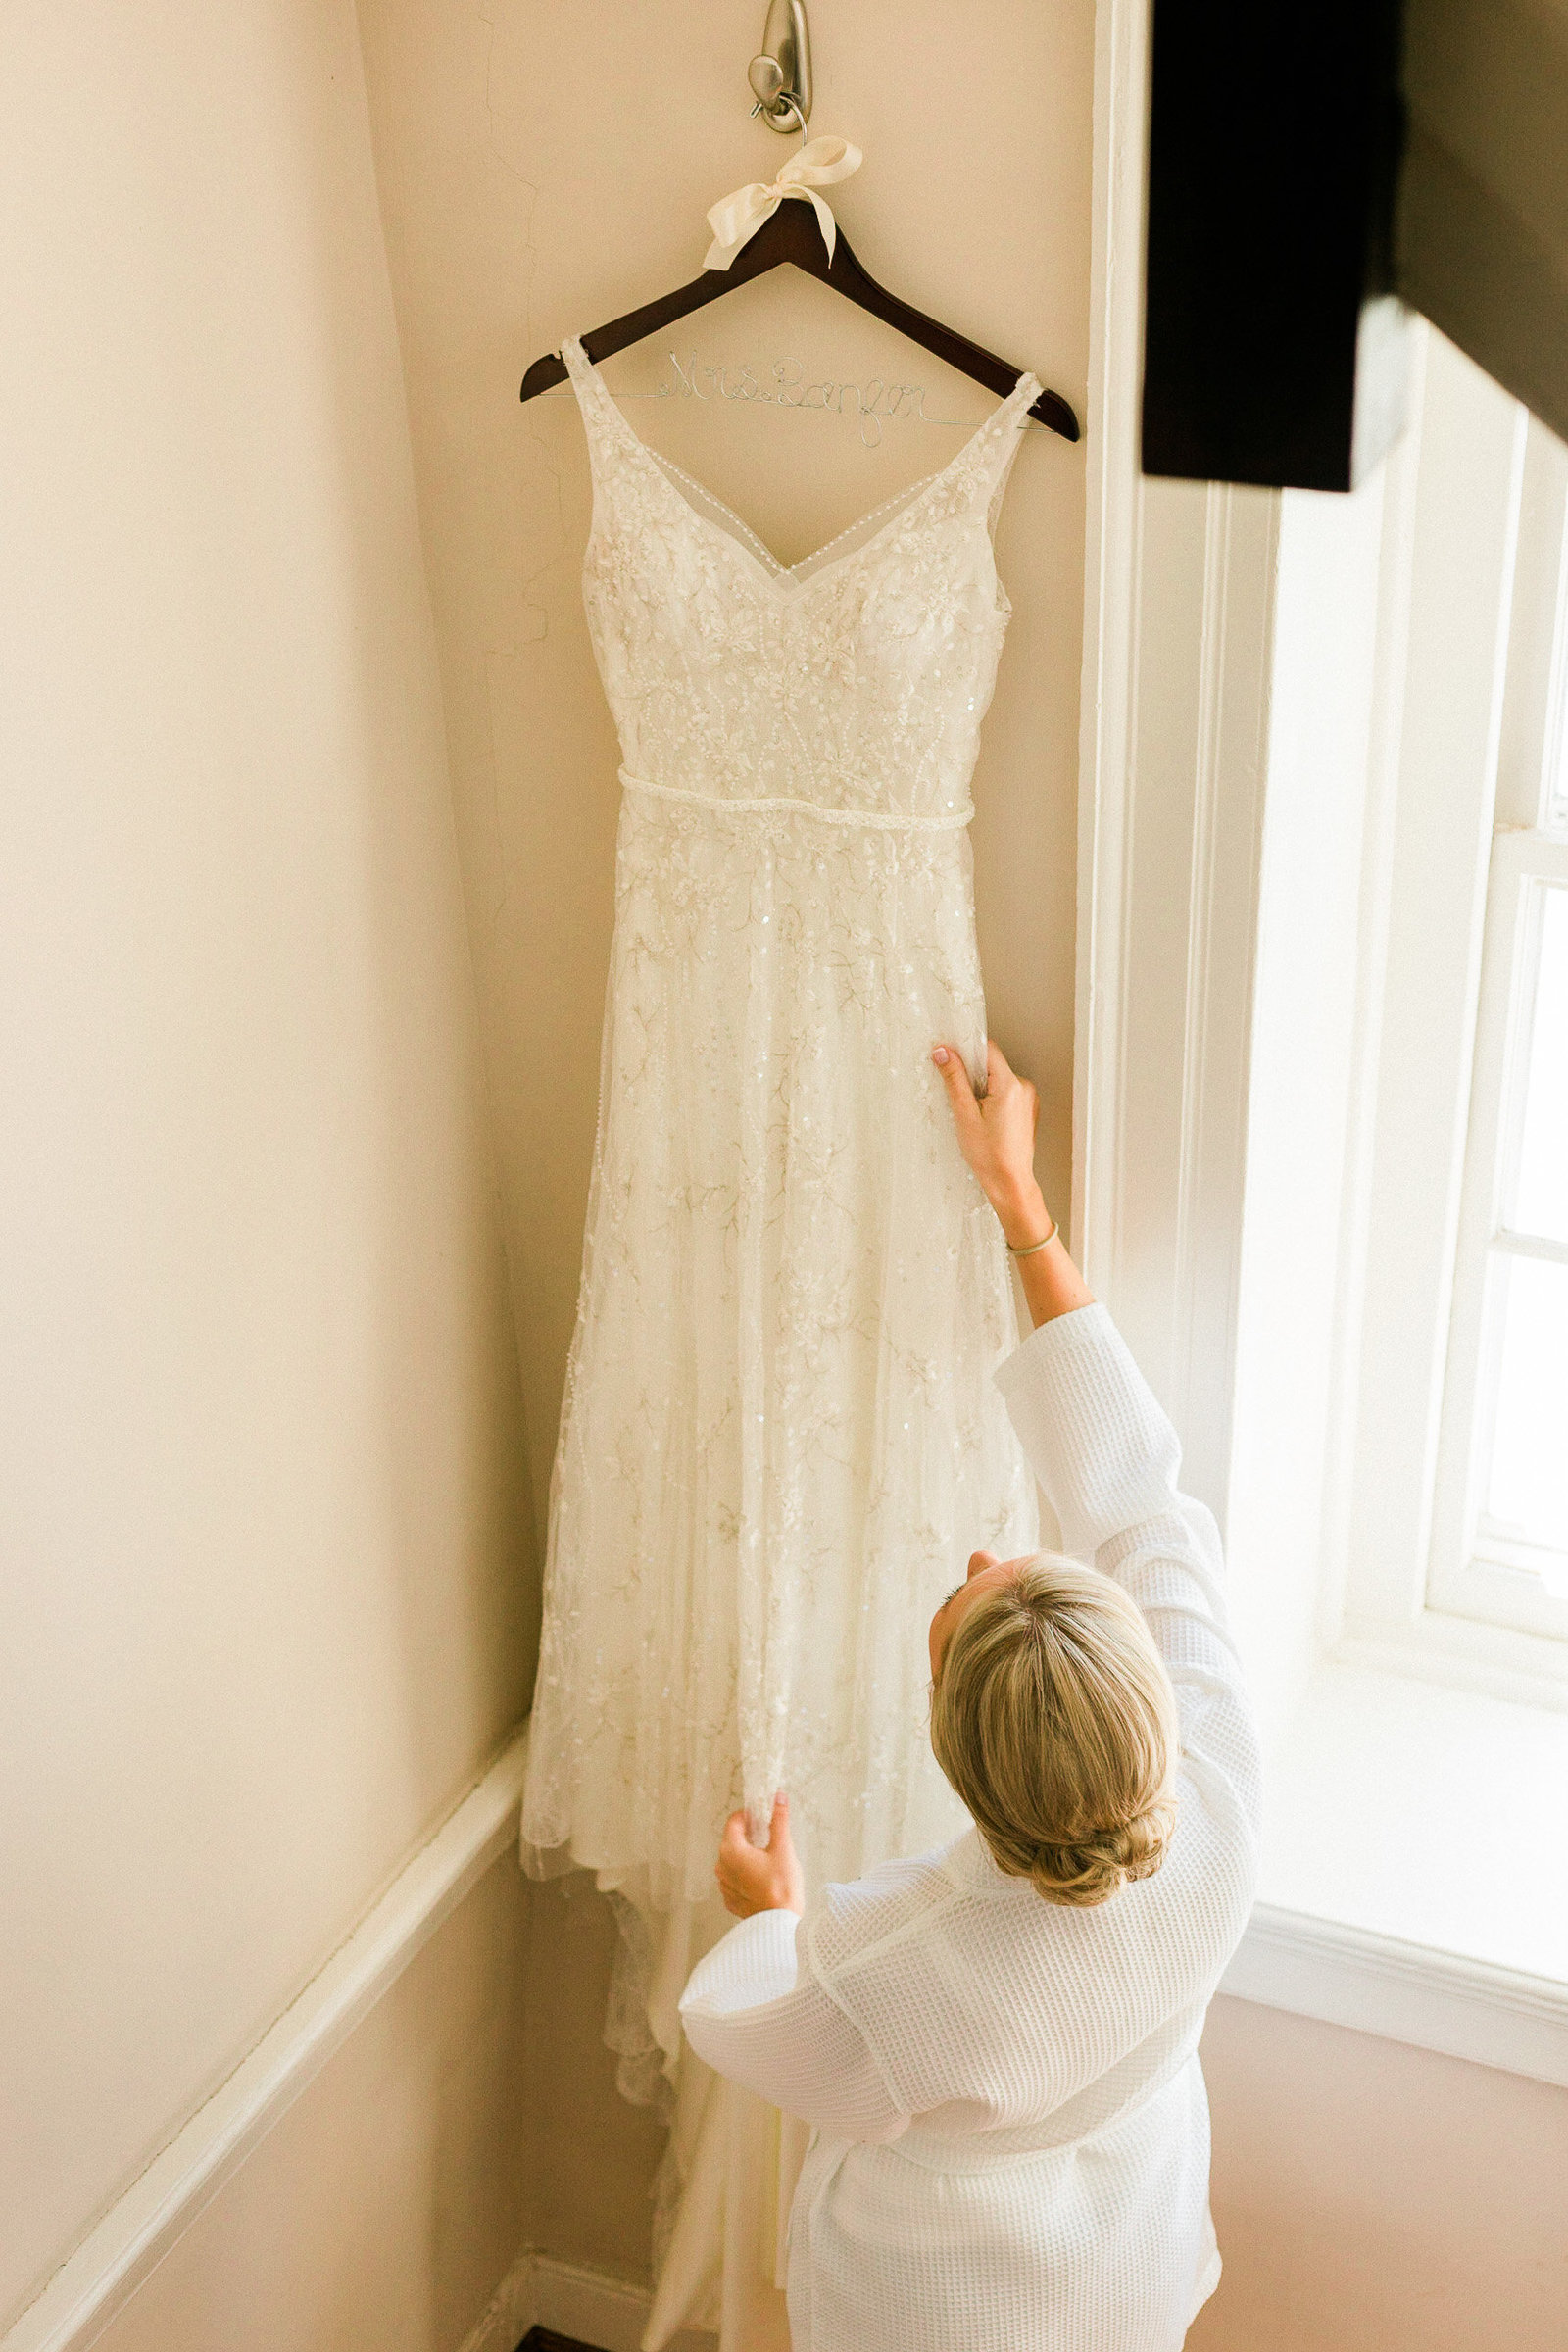 Bride look at her wedding dress hanging up